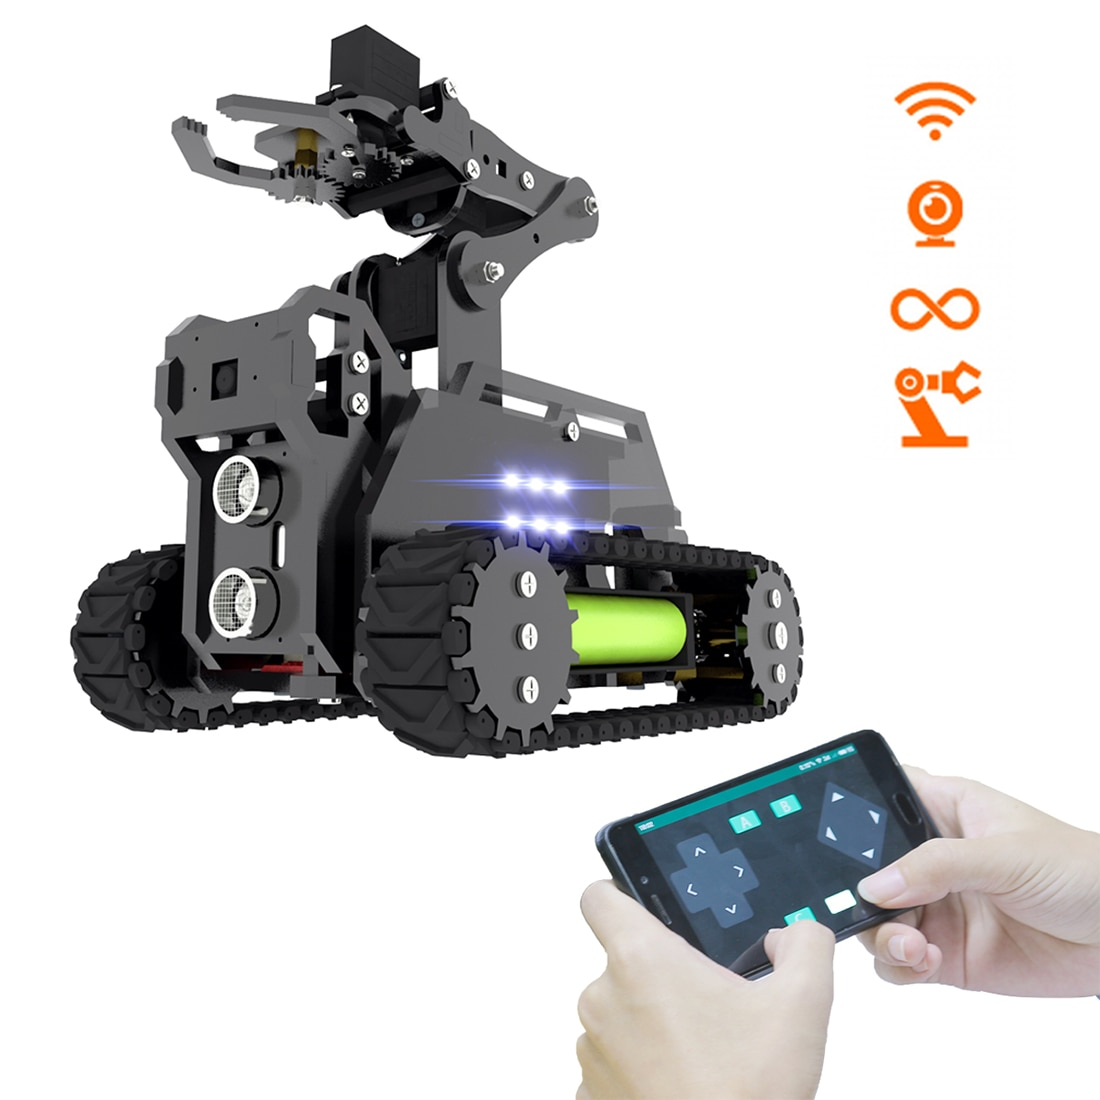 Adeept RaspTank WiFi Wireless Smart Robot Car Kit Tank 4DOF Robotic Arm Robot OpenCV Target Tracking